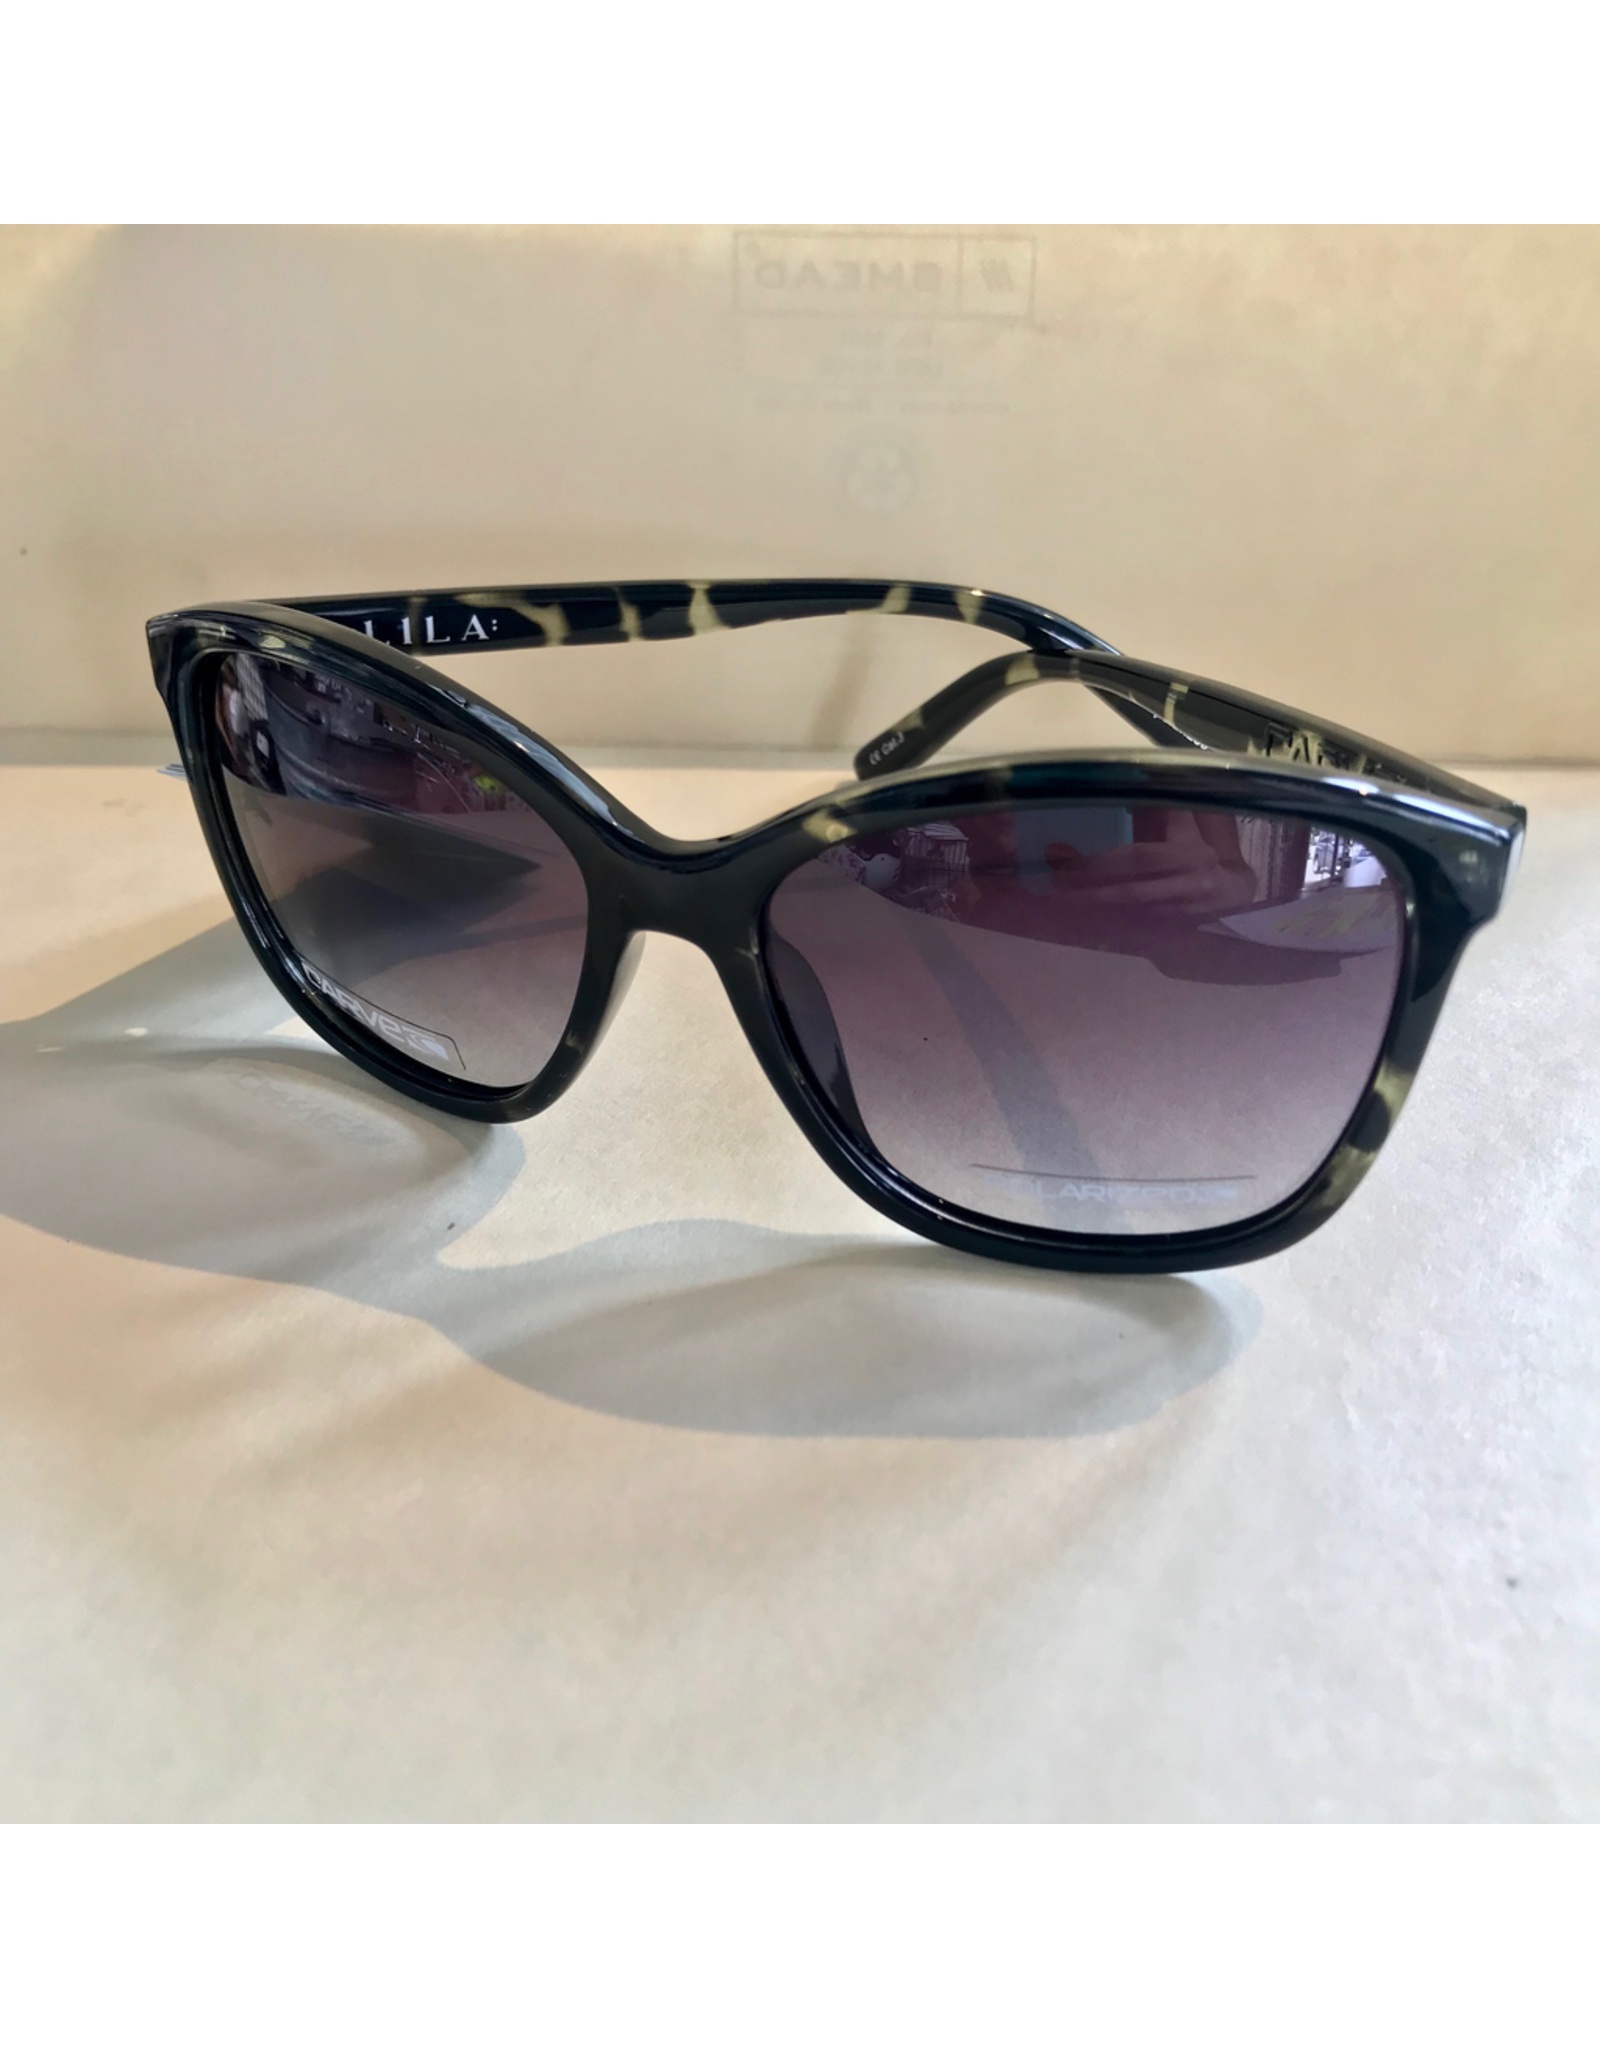 CARVE SUNGLASSES LILA POLARIZED GREY LENS - DARK BROWN TORTOISE